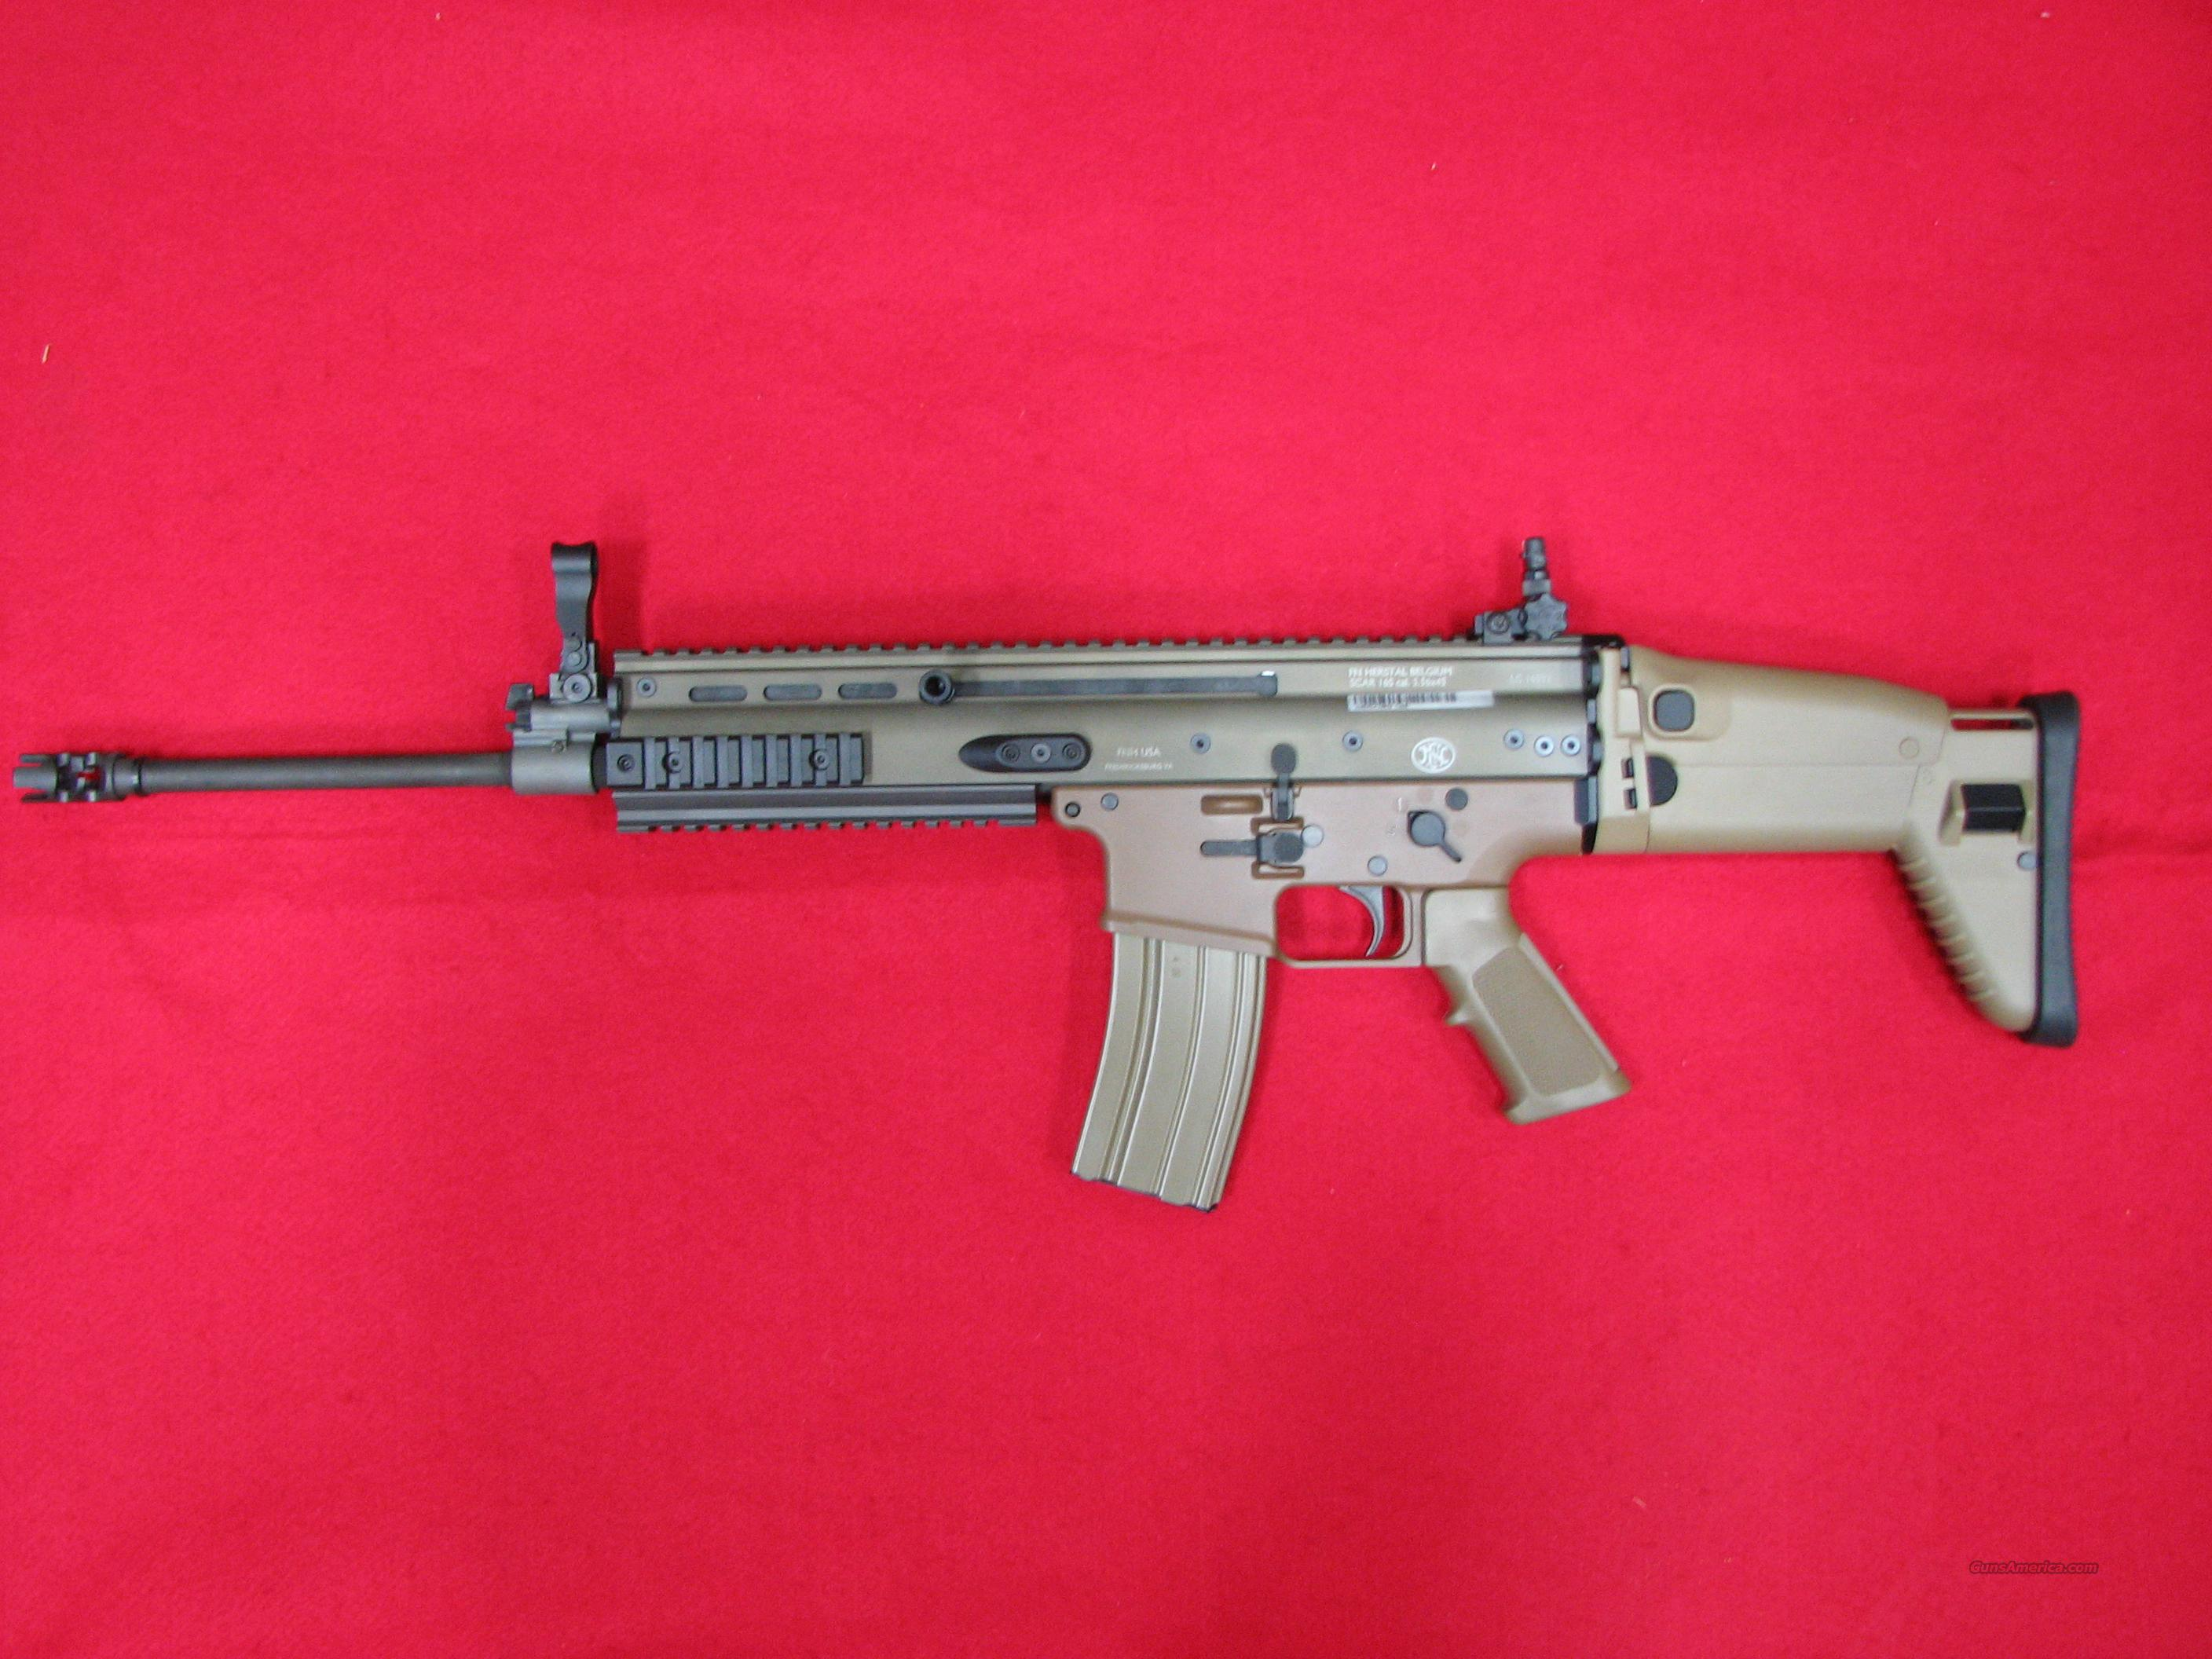 FNH Scar 16S USED  Guns > Rifles > FNH - Fabrique Nationale (FN) Rifles > Semi-auto > Other